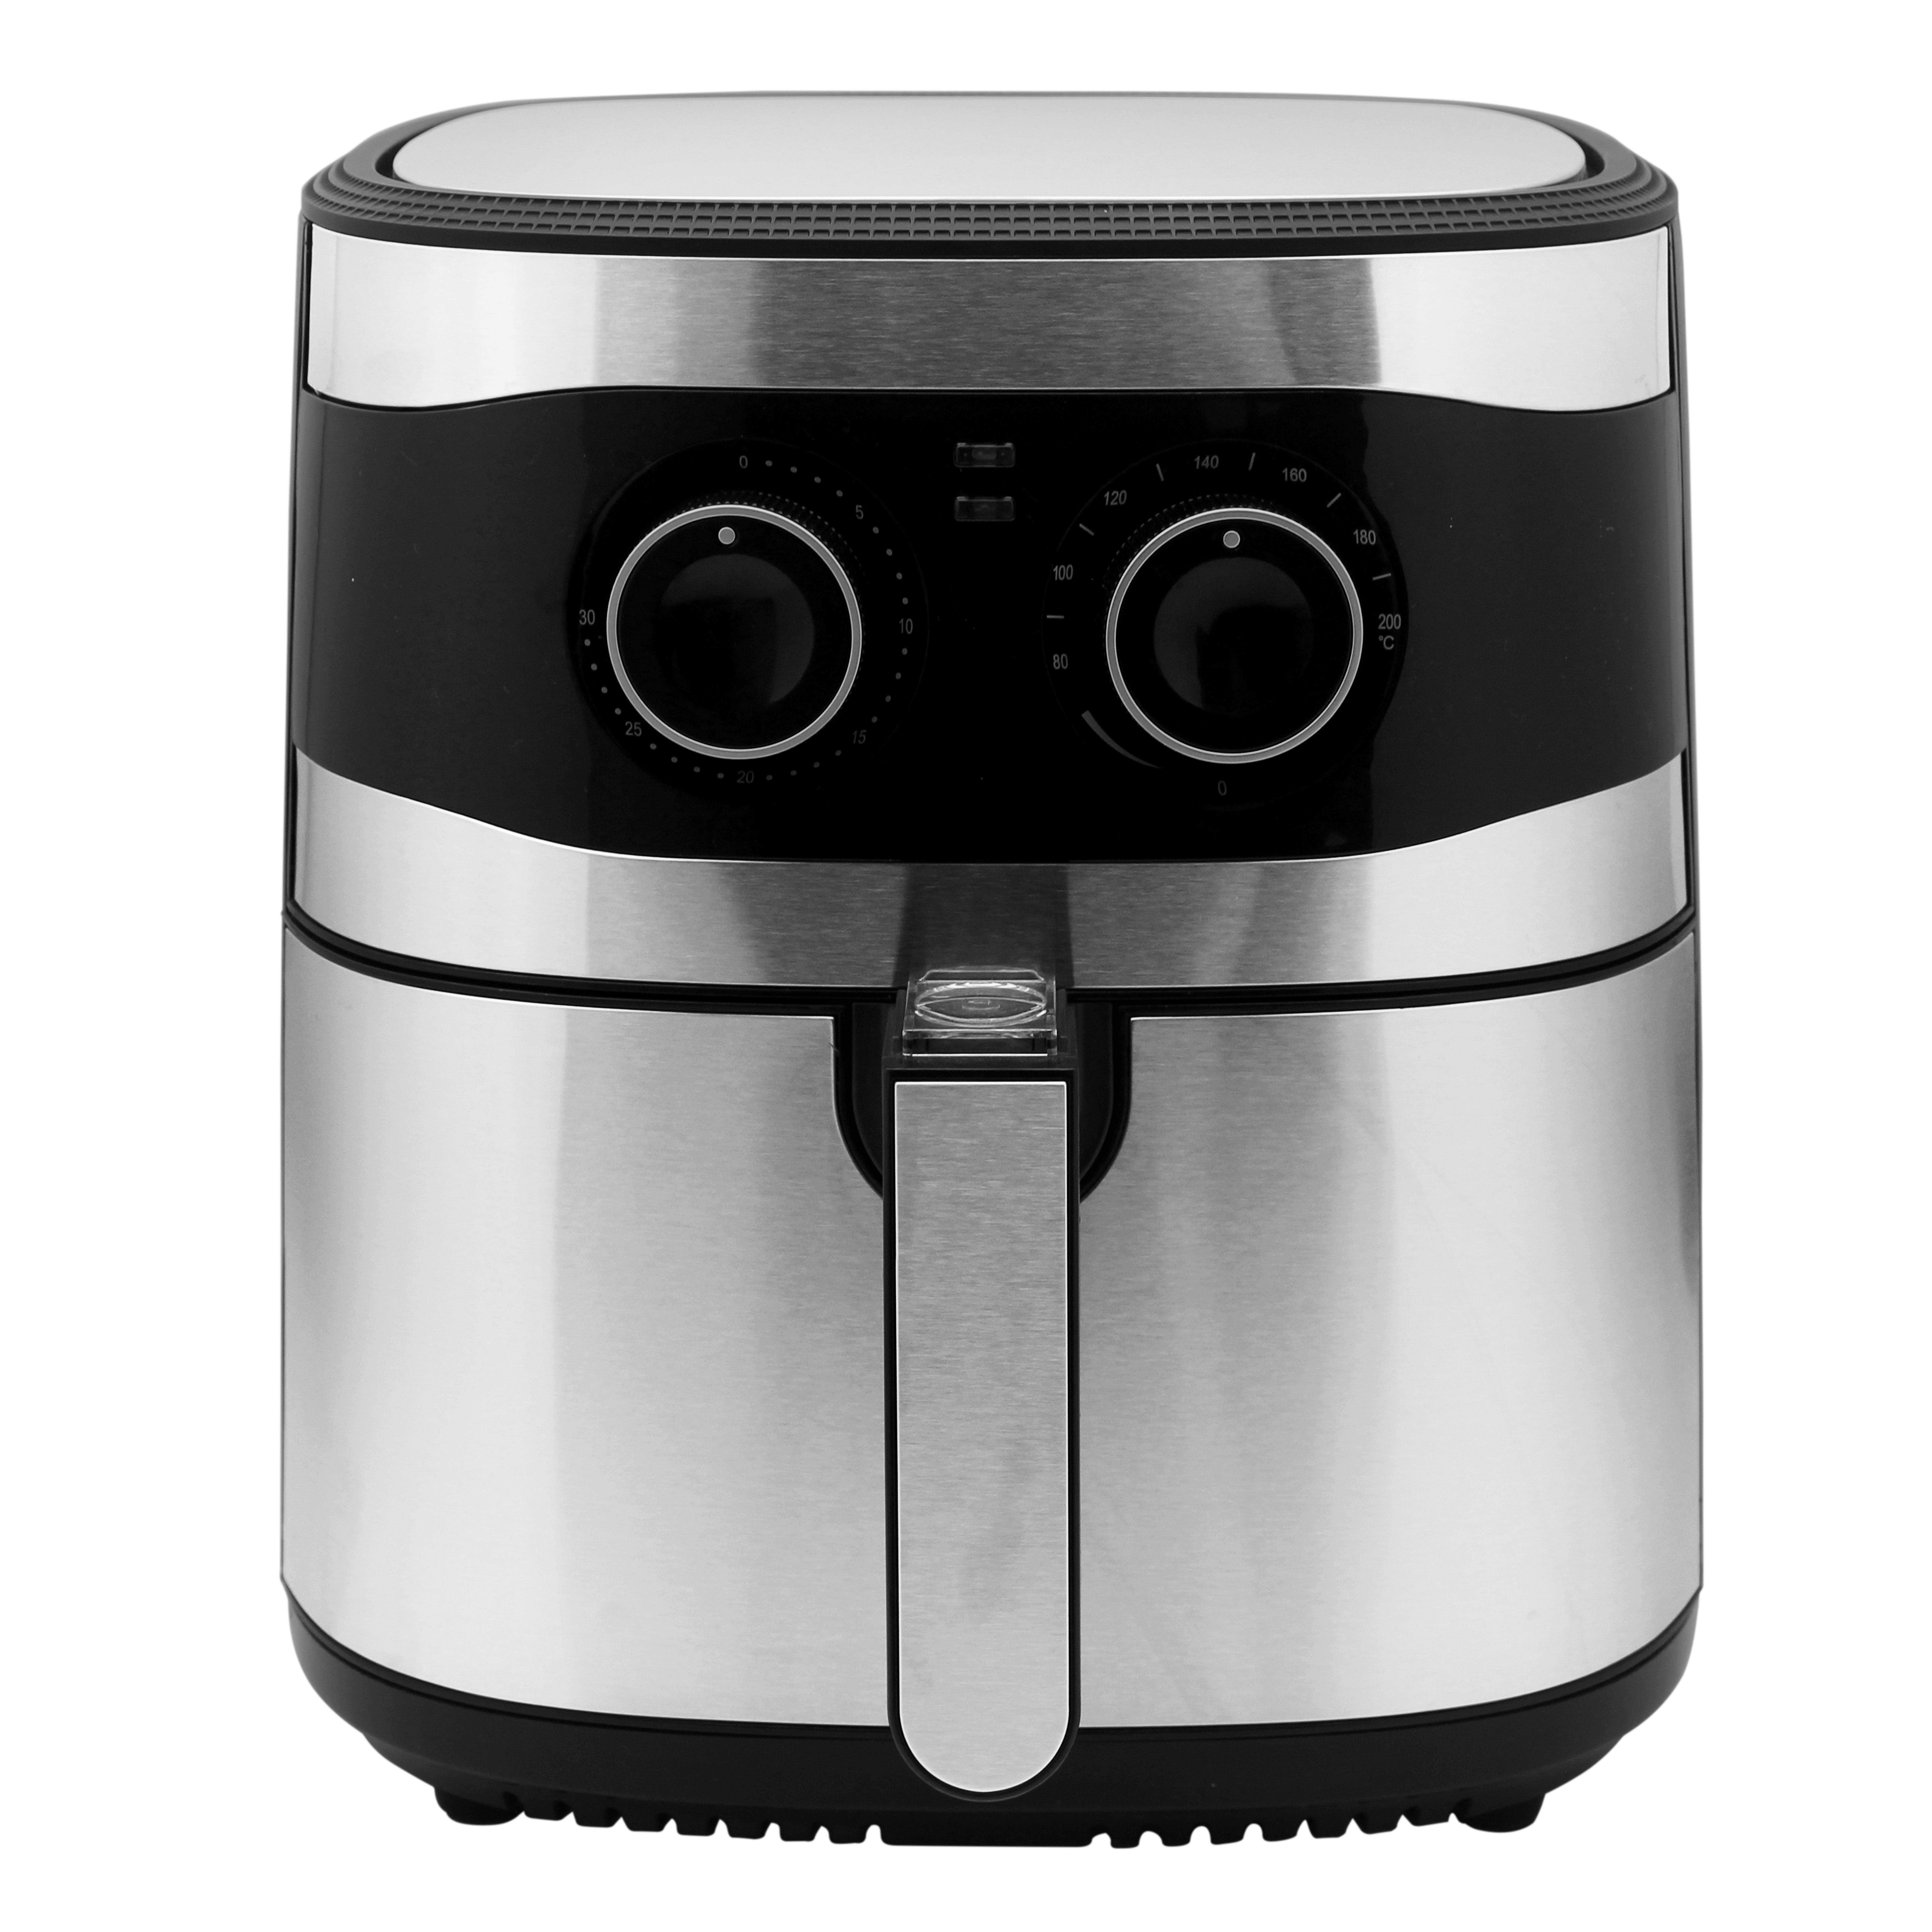 Popular in Amazon air fryer Wholesale 6L/8L Digital Control Hot Air Fry Without Oil Air Fryer